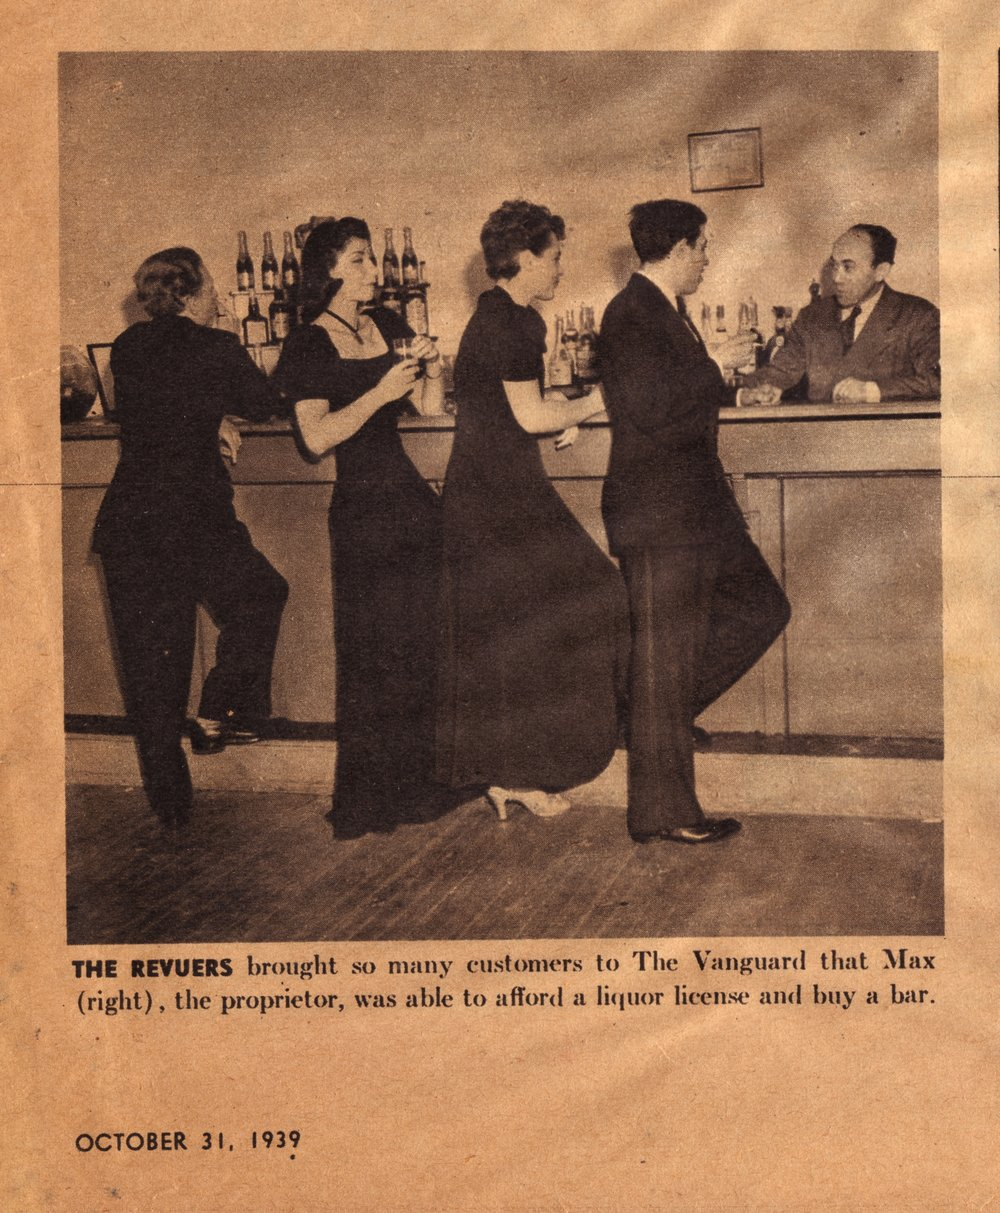 The Revuers included Judy Holiday, Adolph Green & Betty Comden